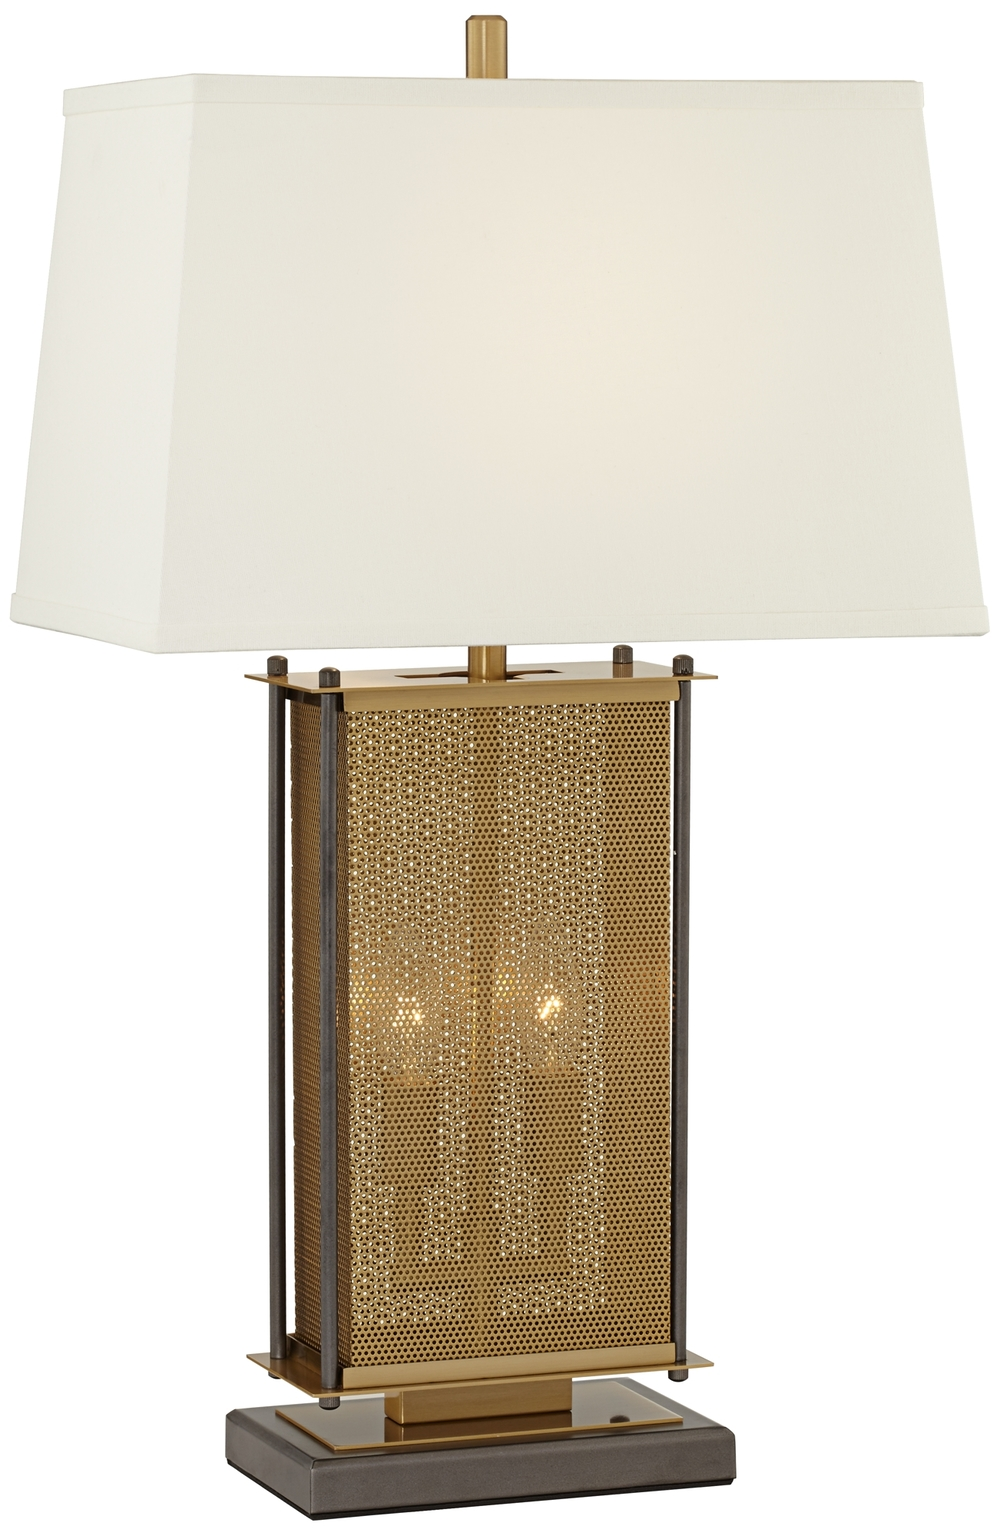 Pacific Coast Lighting - Perforated Cage Table Lamp